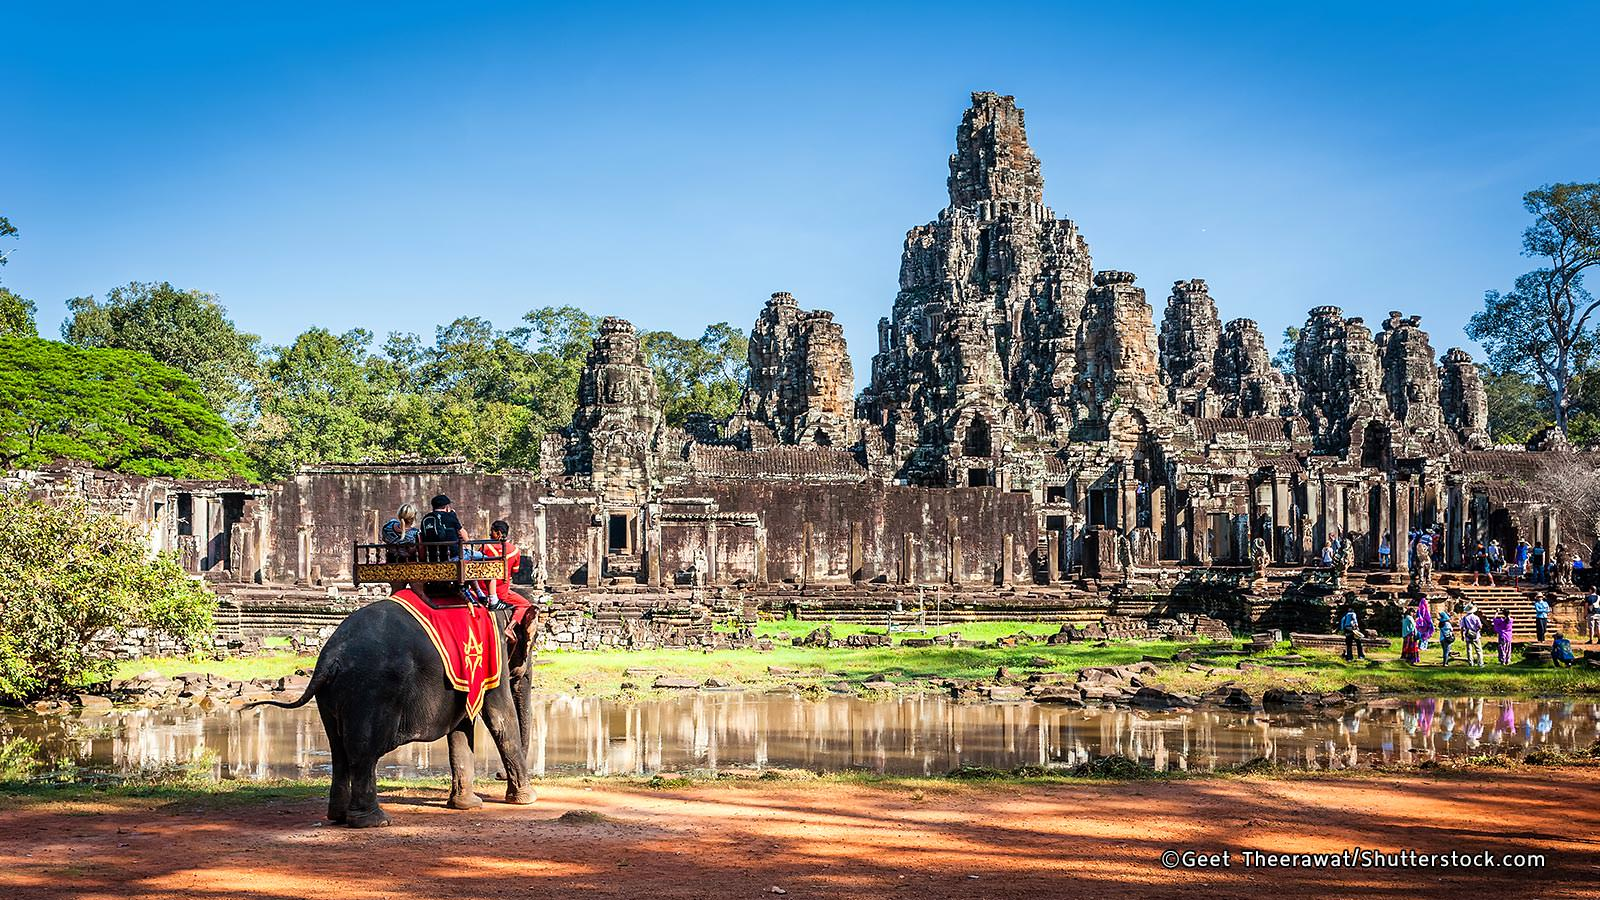 attract tourists to visit siem reap 1121000 jobs  have great potential to attract more international tourists, but depend   important tourist locations of phnom penh, siem reap, and sihanoukville.